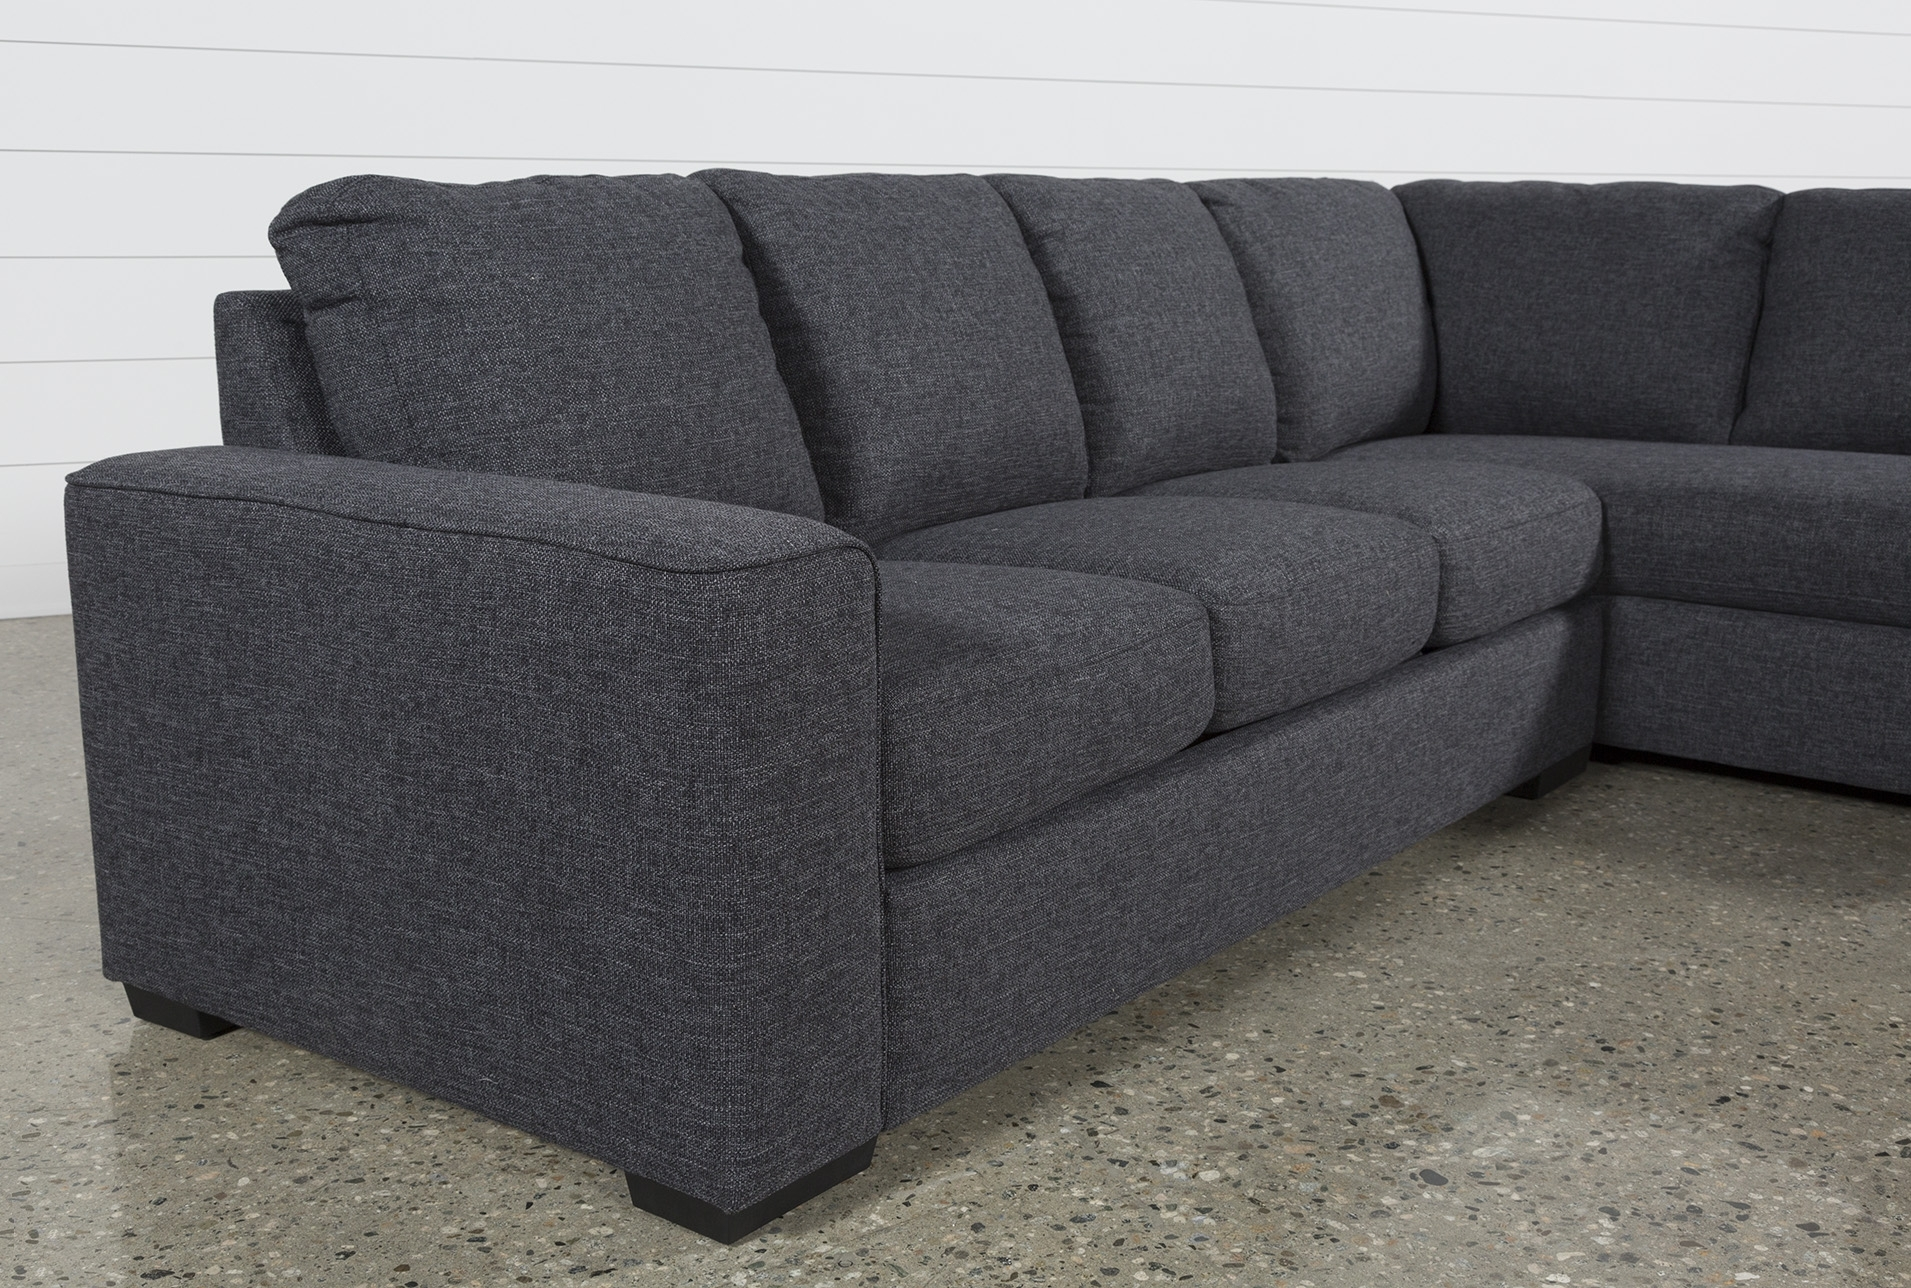 Lucy Dark Grey 2 Piece Sectional W/raf Chaise | Products | Pinterest intended for Lucy Grey 2 Piece Sleeper Sectionals With Laf Chaise (Image 17 of 30)